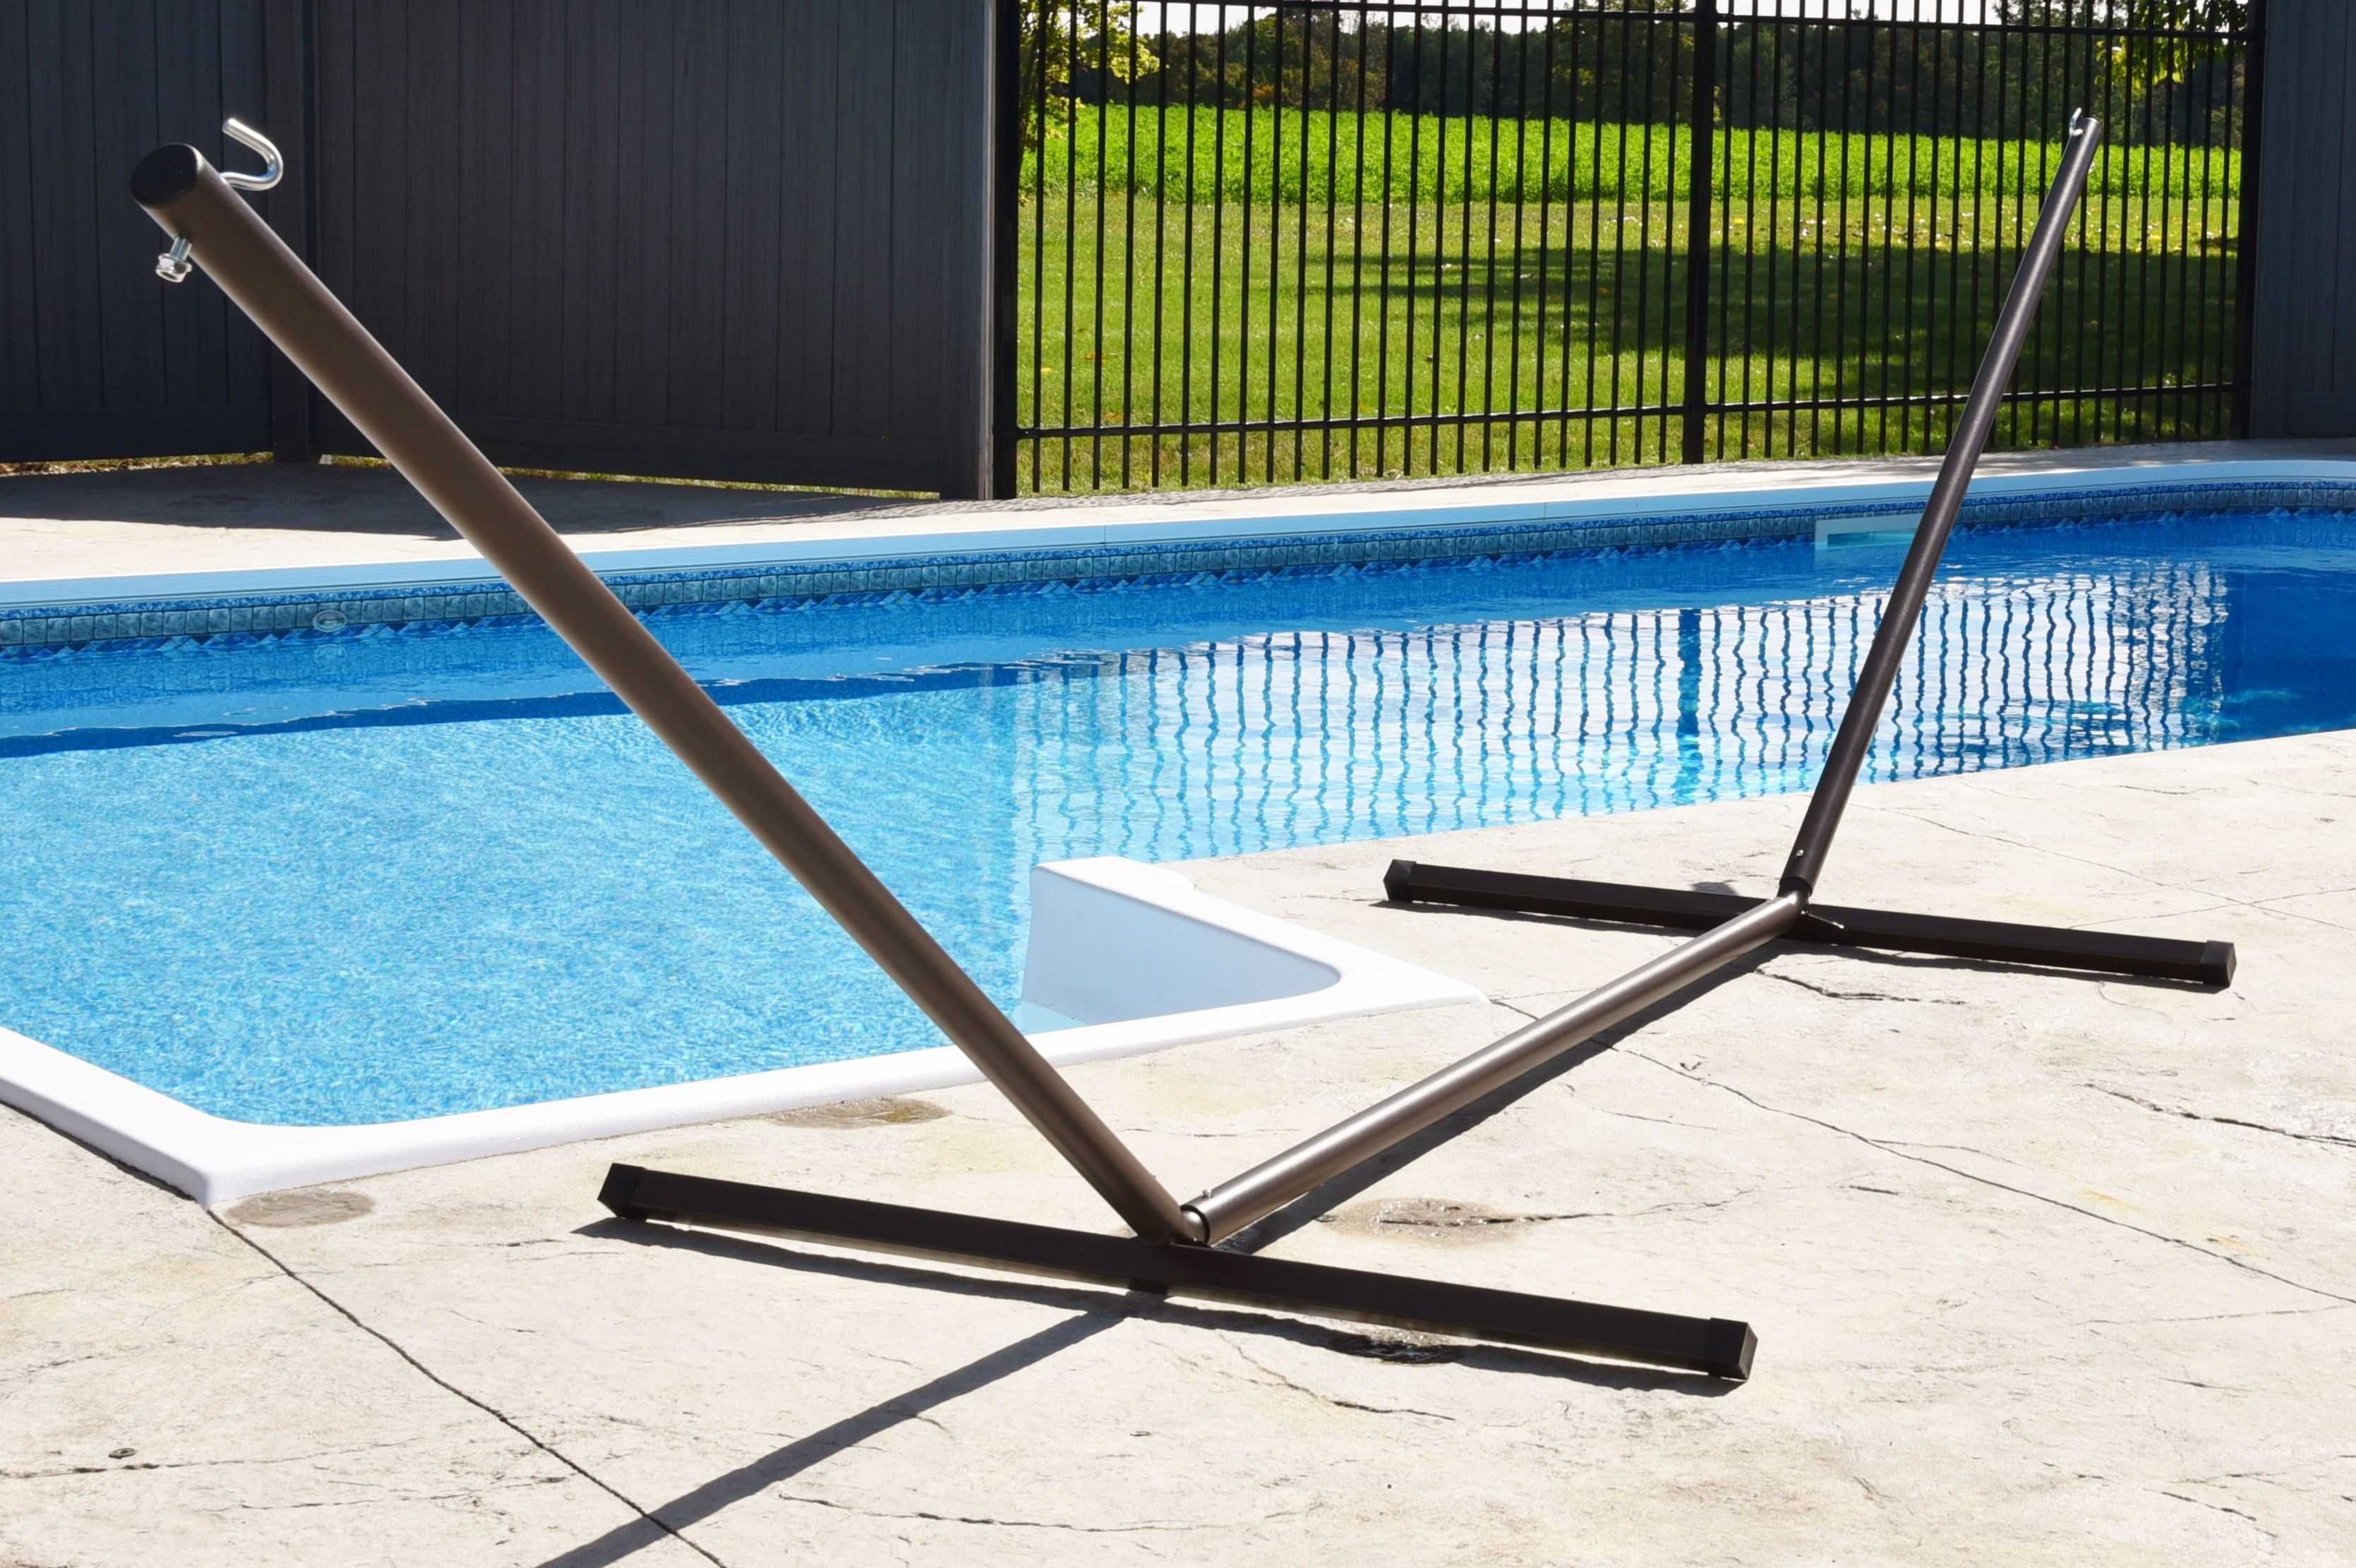 Vivere 15ft 3-Beam Powder Coated Steel Hammock Stand Oil-Rubbed Bronze by Vivere LTD